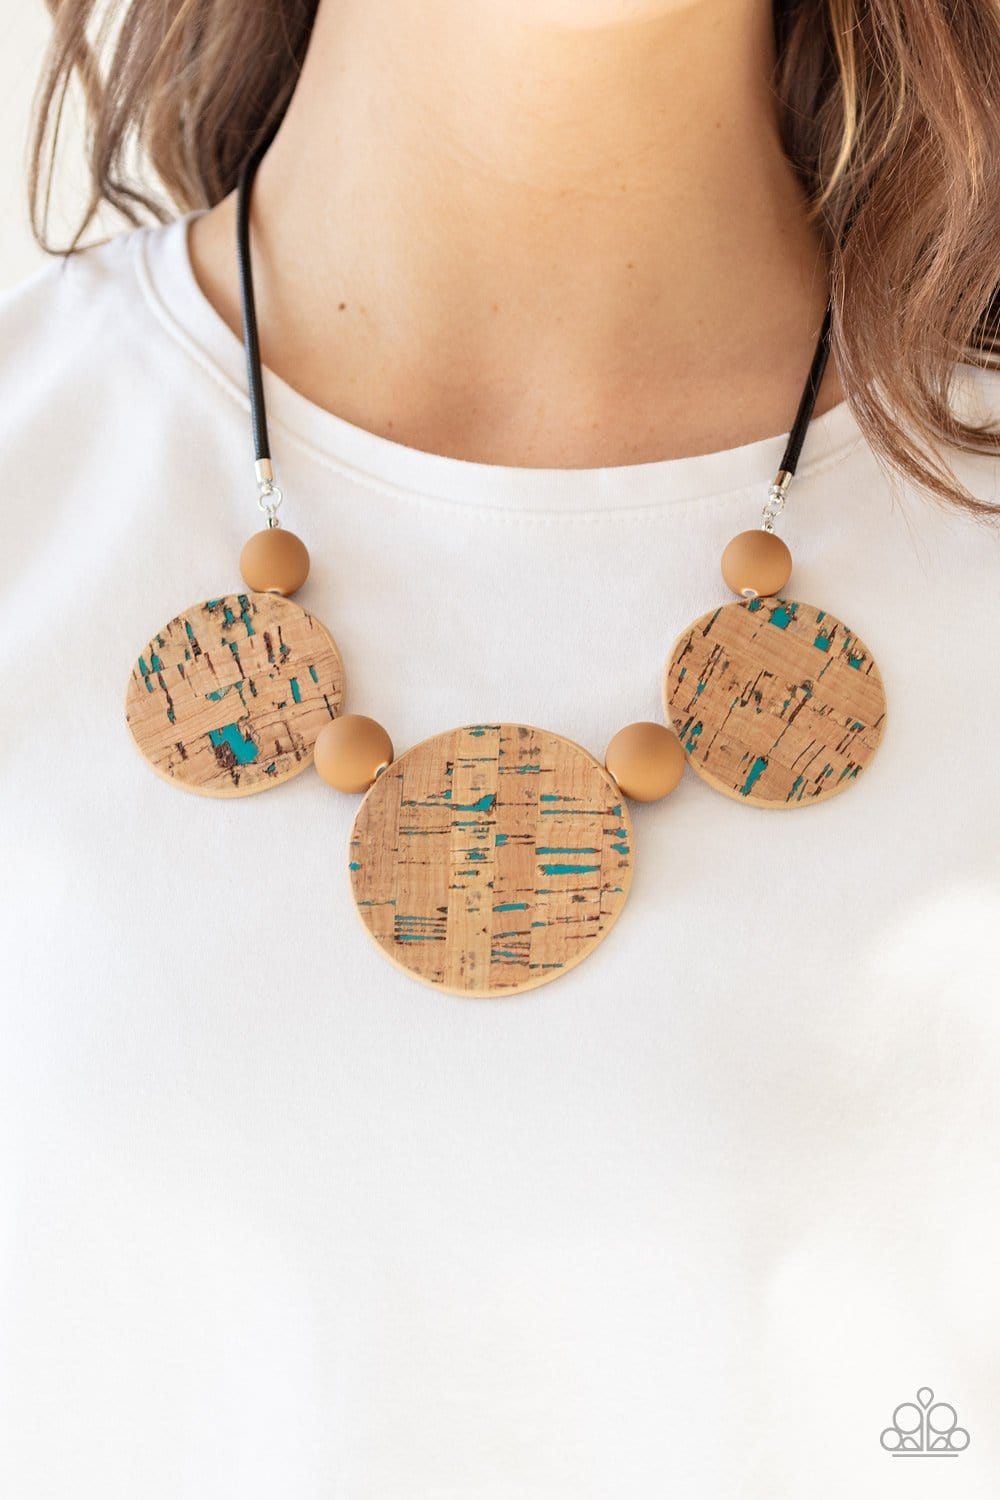 Paparazzi: Pop The Cork - Blue Cork-Like Necklace - Jewels N' Thingz Boutique